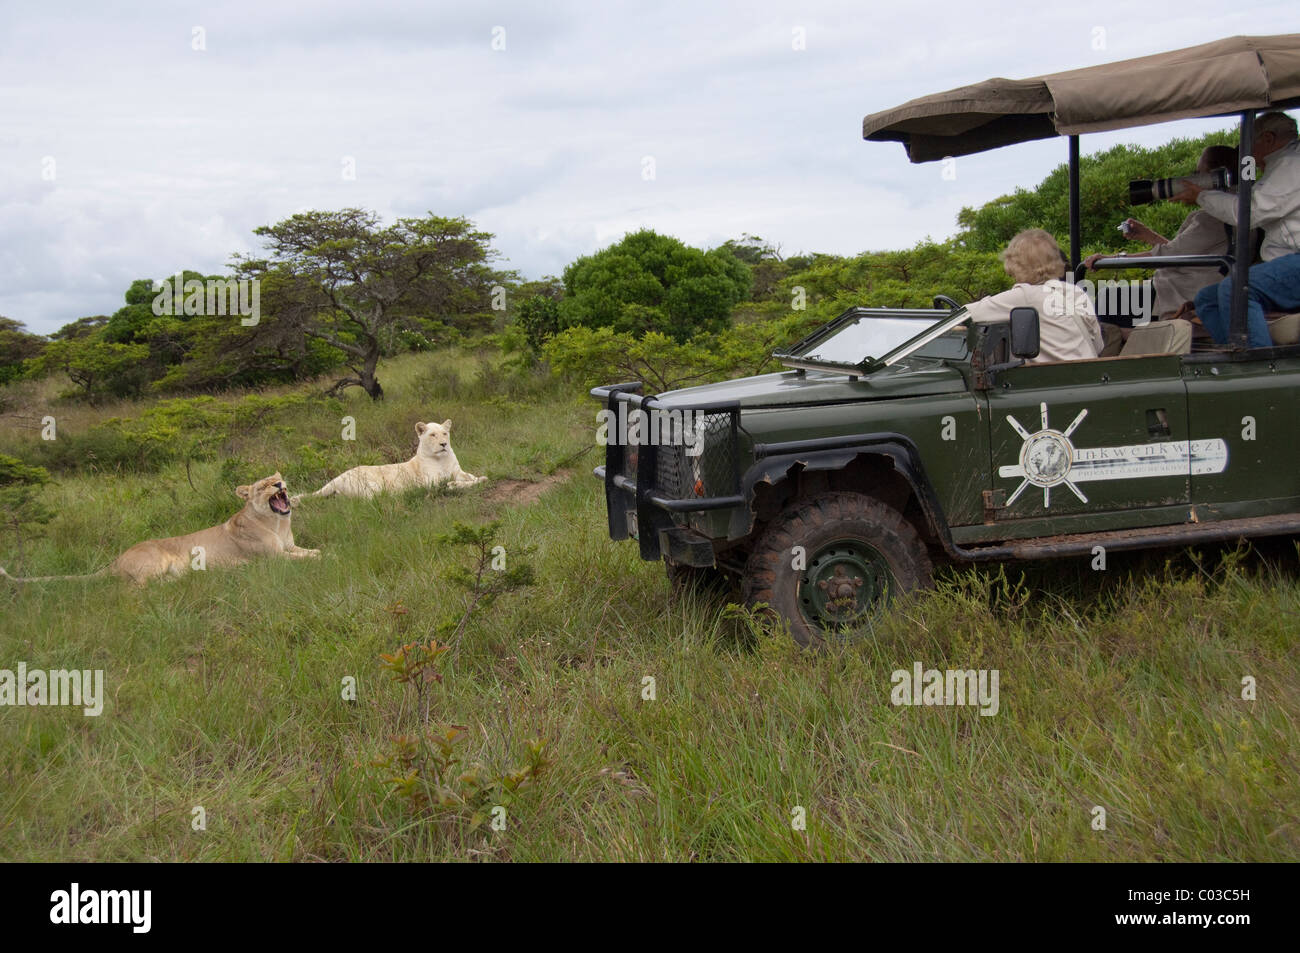 South Africa, Eastern Cape, East London, Inkwenkwezi Private Game Reserve. Safari jeep near a pair of lions. Stock Photo